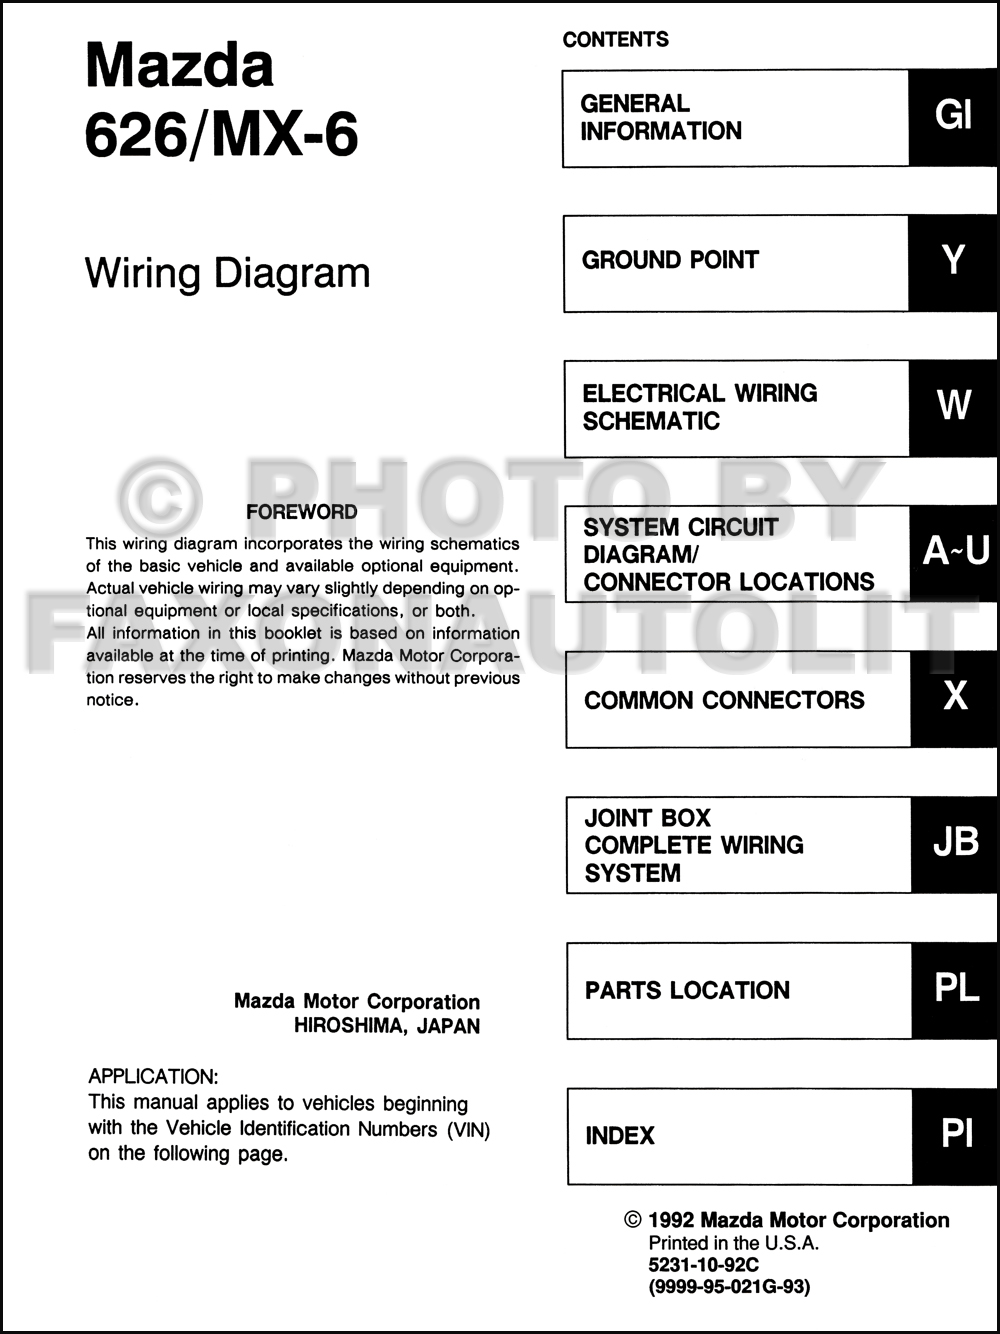 1993Mazda626MX6OWD TOC 1993 mazda 626 and mx 6 wiring diagram manual original mazda 626 wiring diagram at virtualis.co